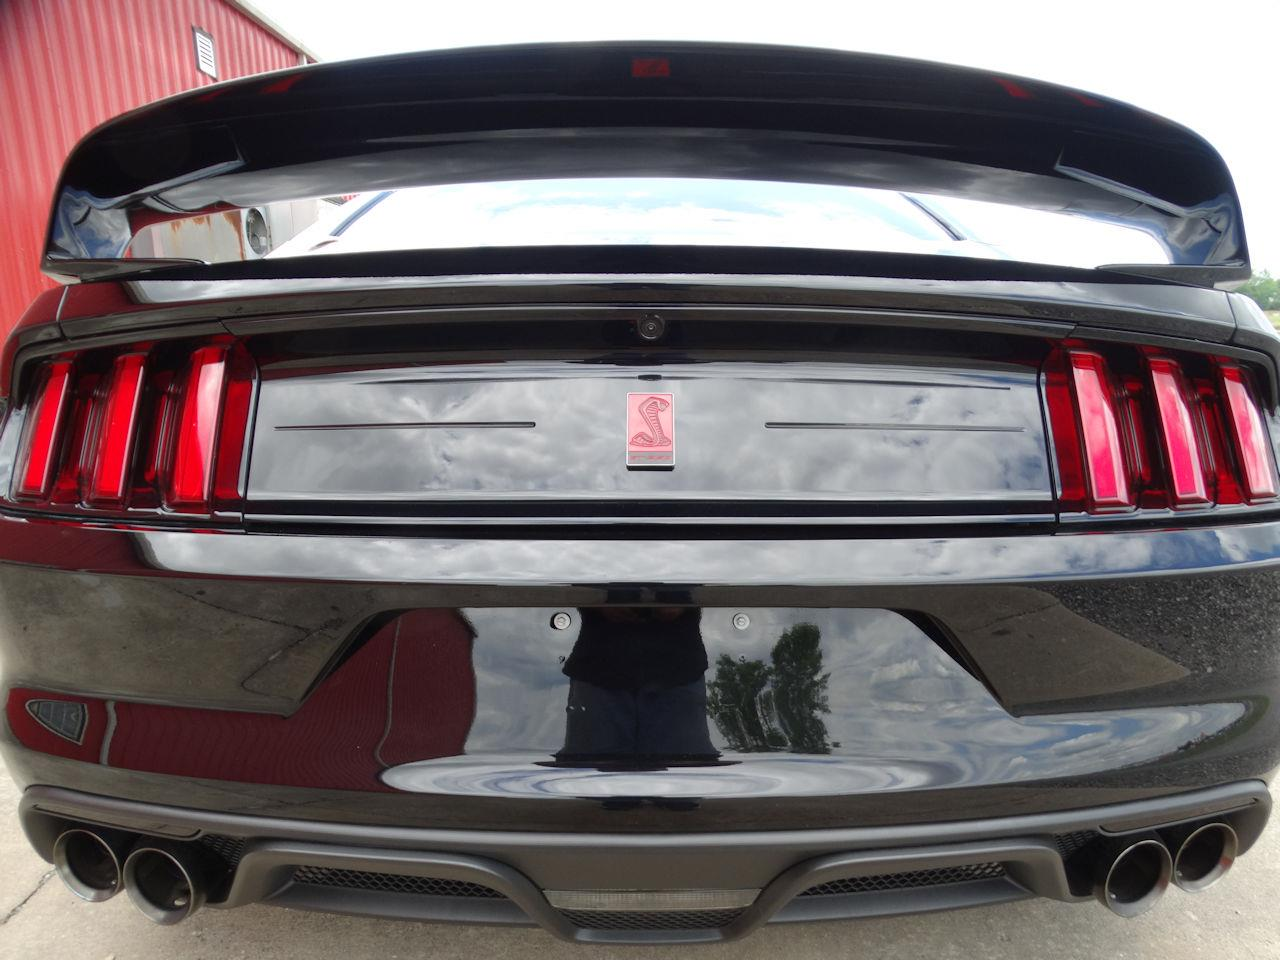 2019 Ford Mustang (CC-1359243) for sale in O'Fallon, Illinois